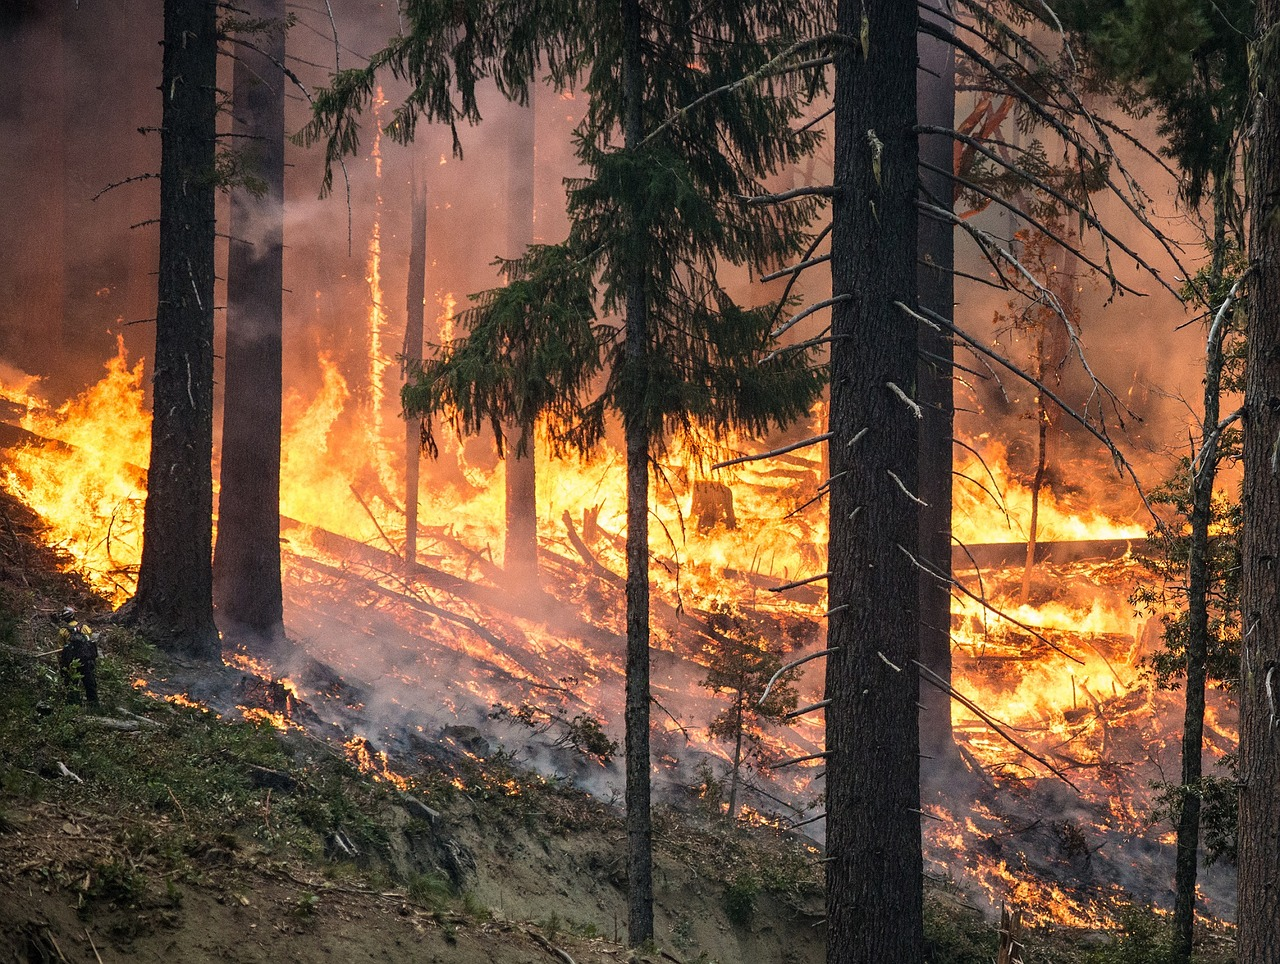 2017 has seen an unusually high number of wildfires worldwide.